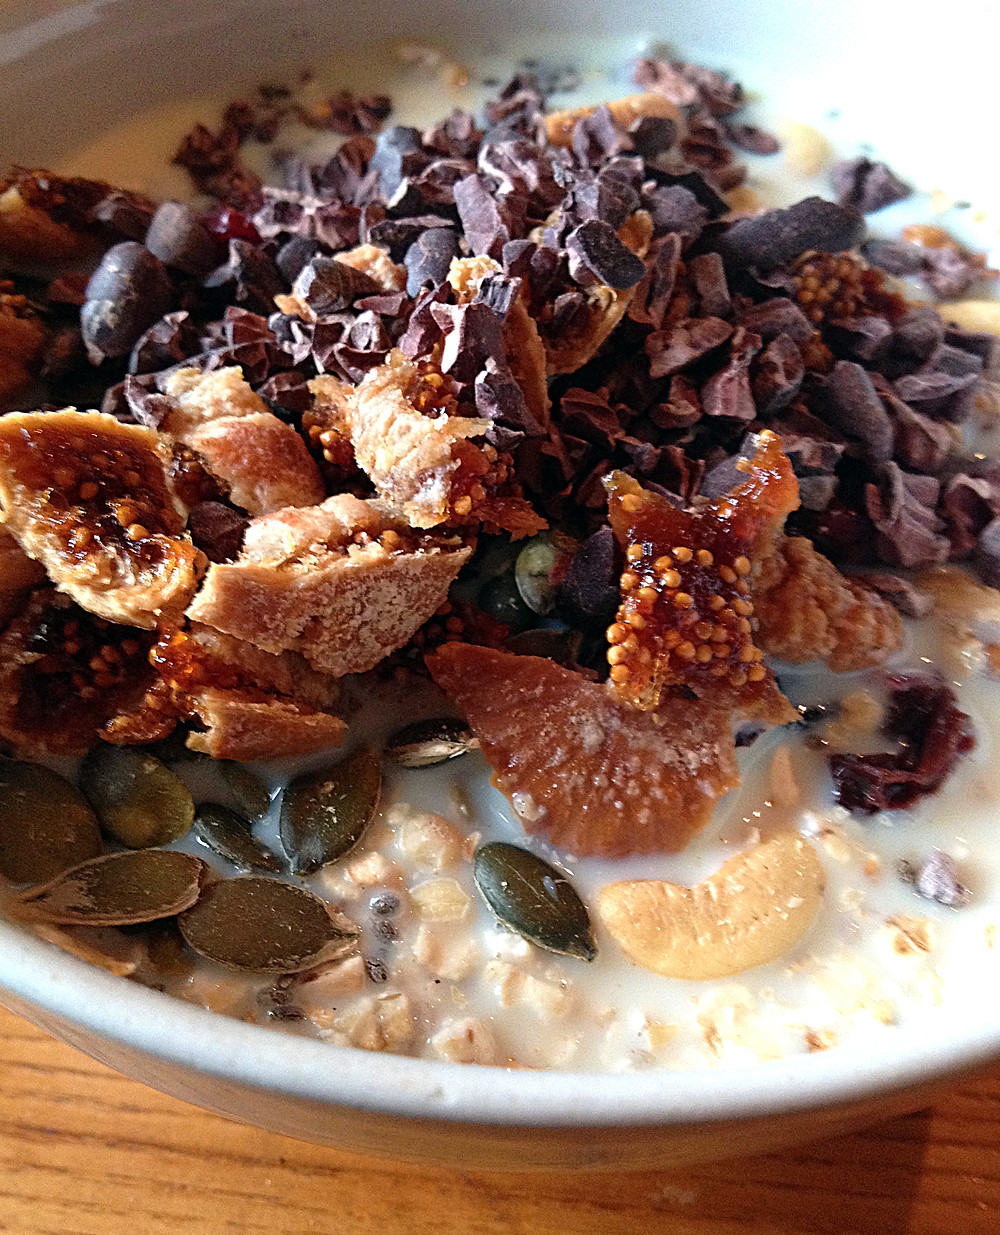 cacao nibs, dried figs, porridge, cashew nuts, dates, pumpkin seeds, cinnamon, vanilla